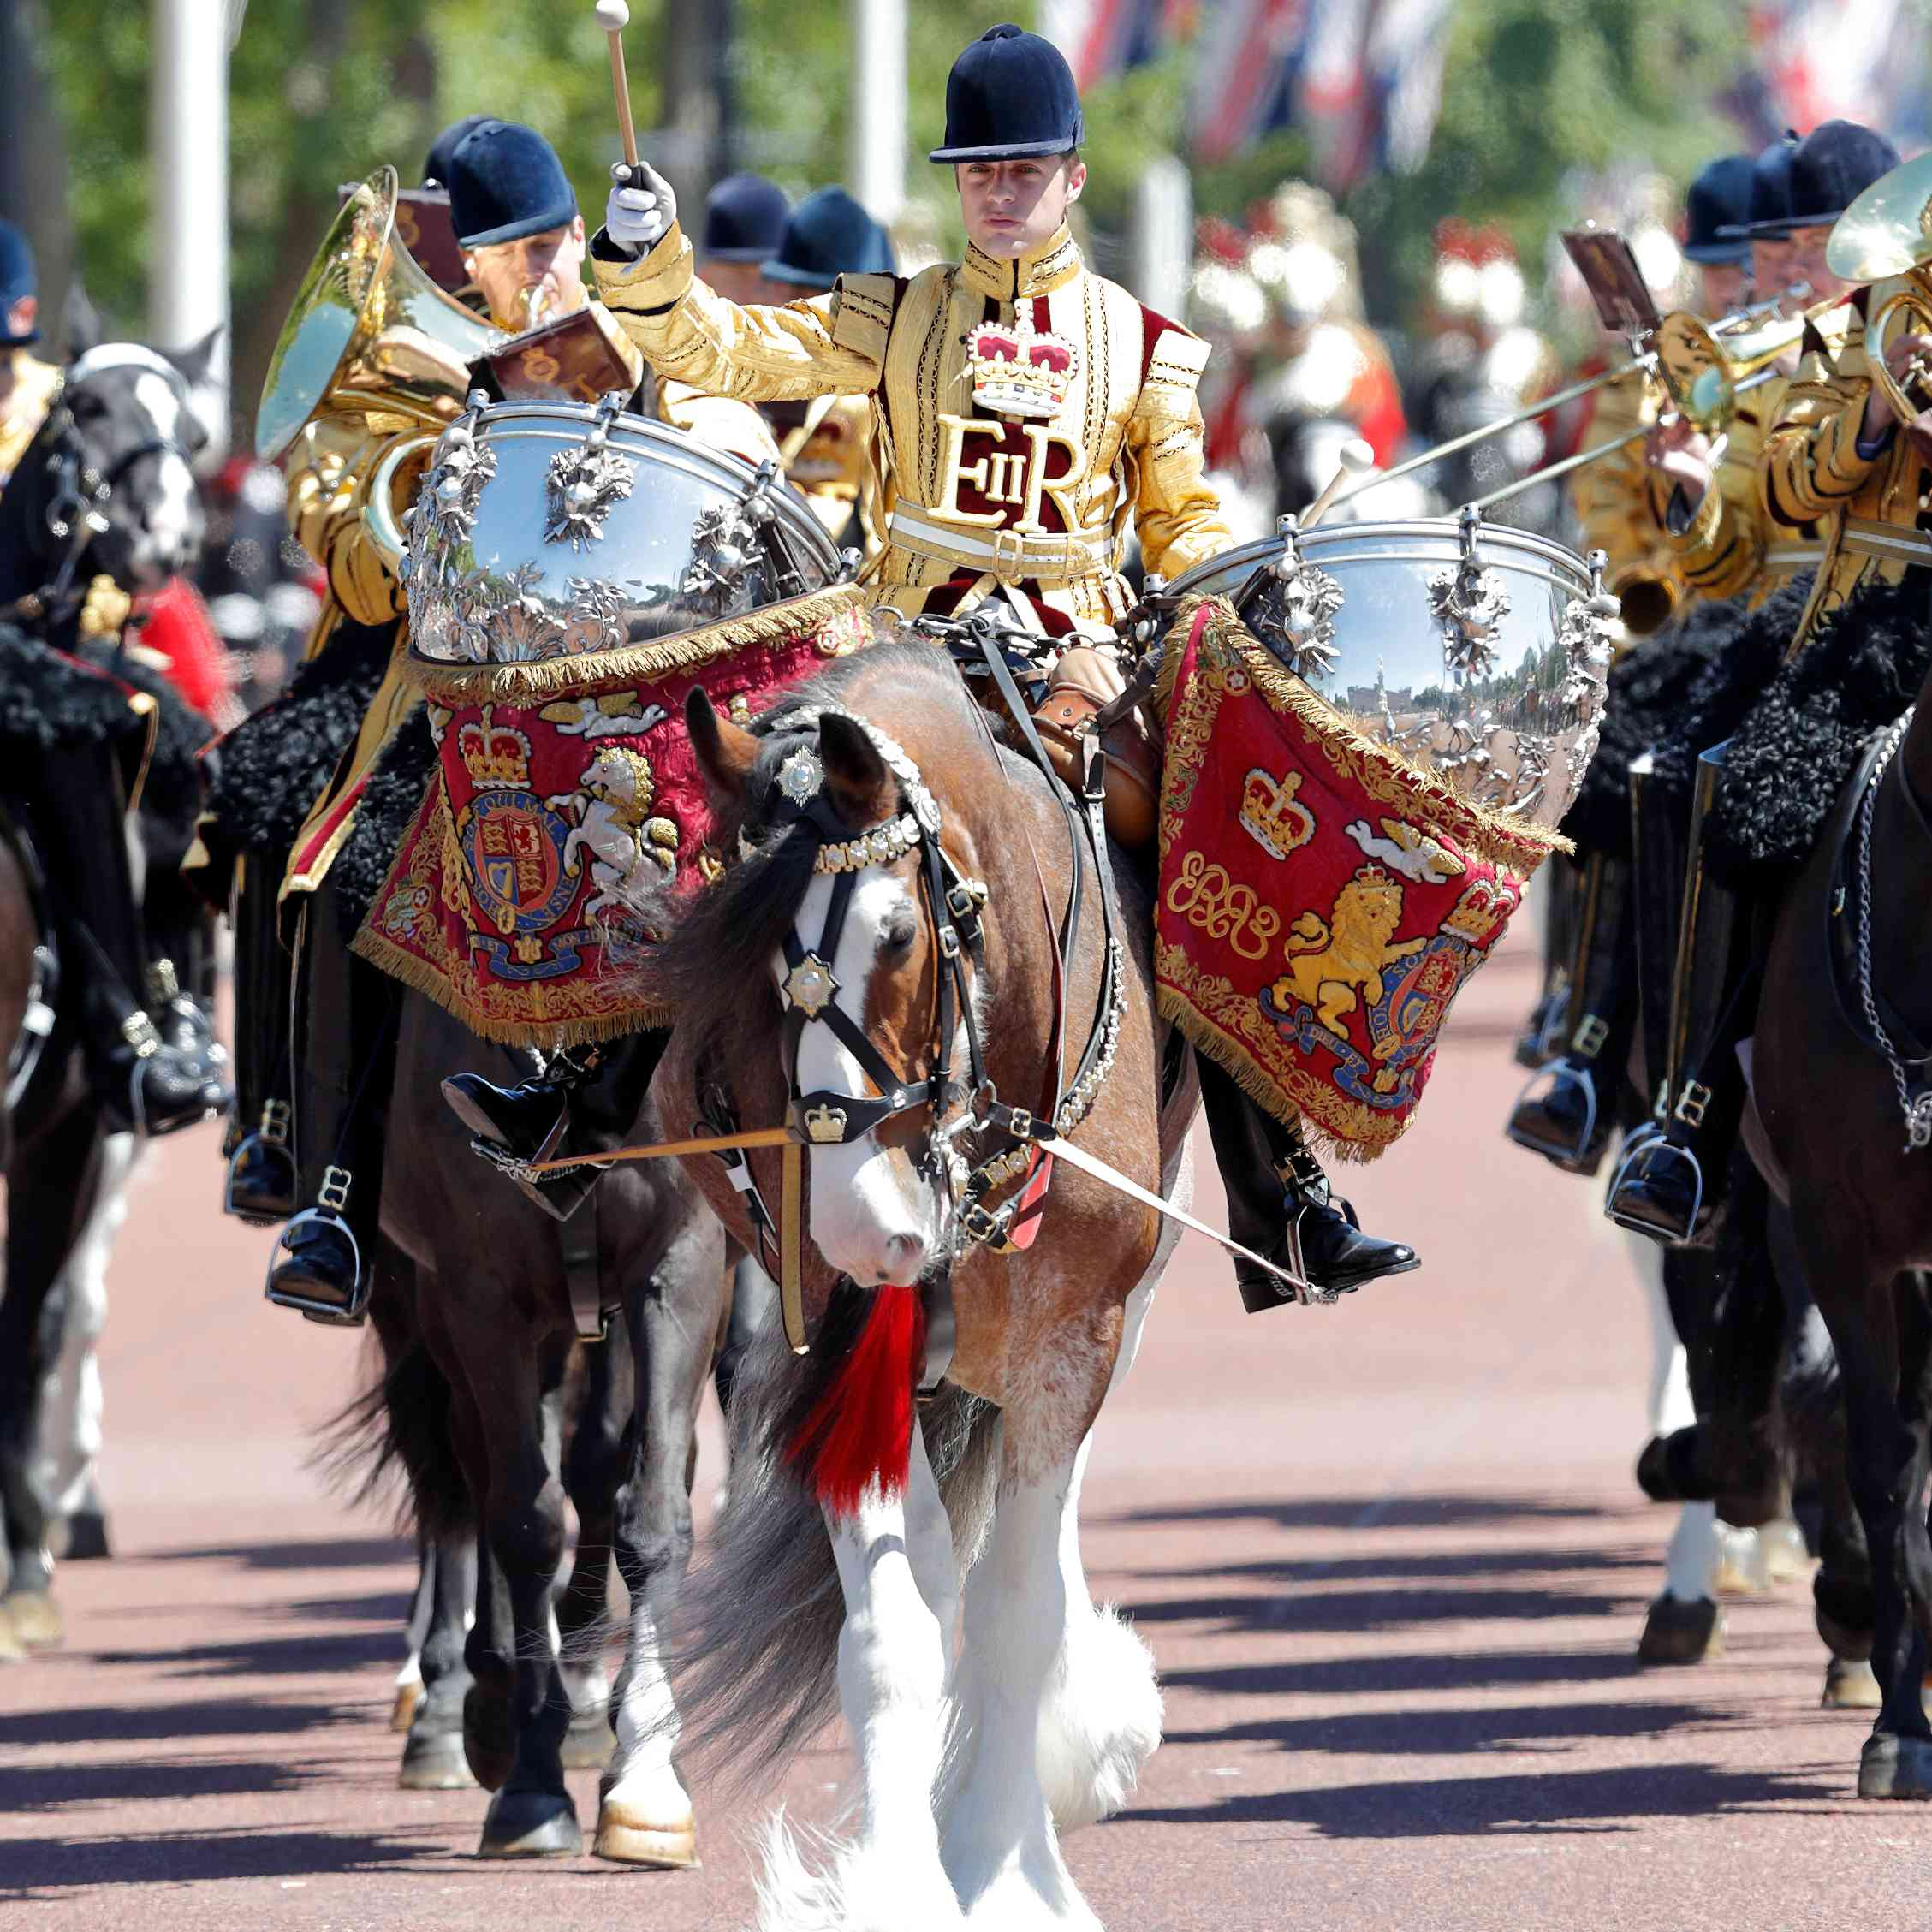 Bay Drum Horse being ridden in a procession in the UK